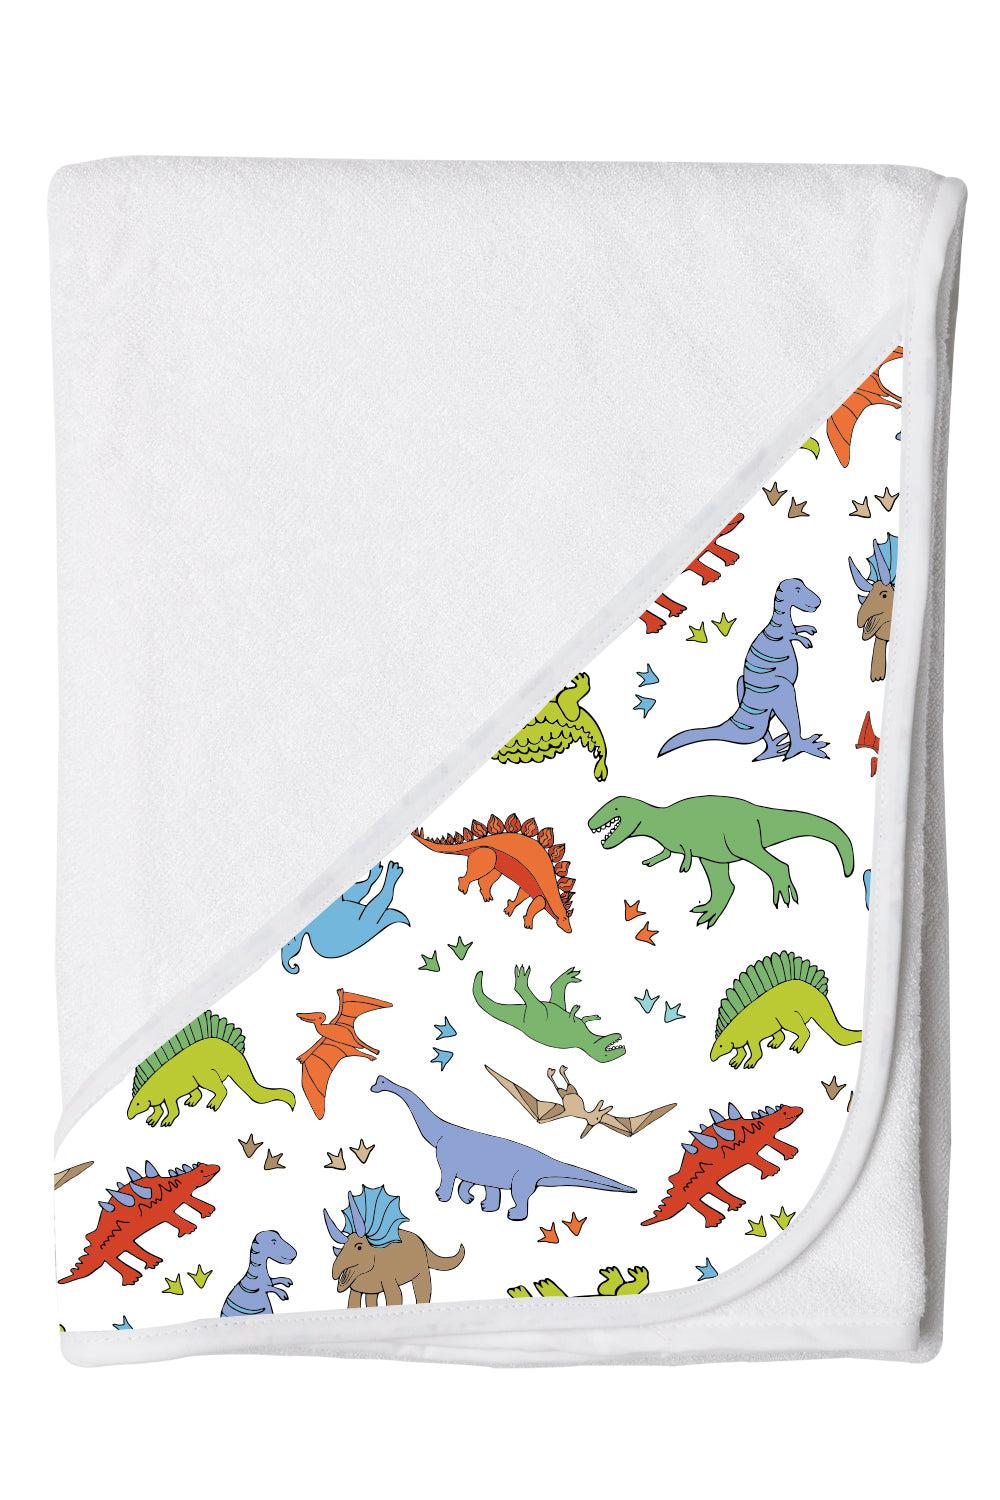 Hooded Toddler Bath Towels